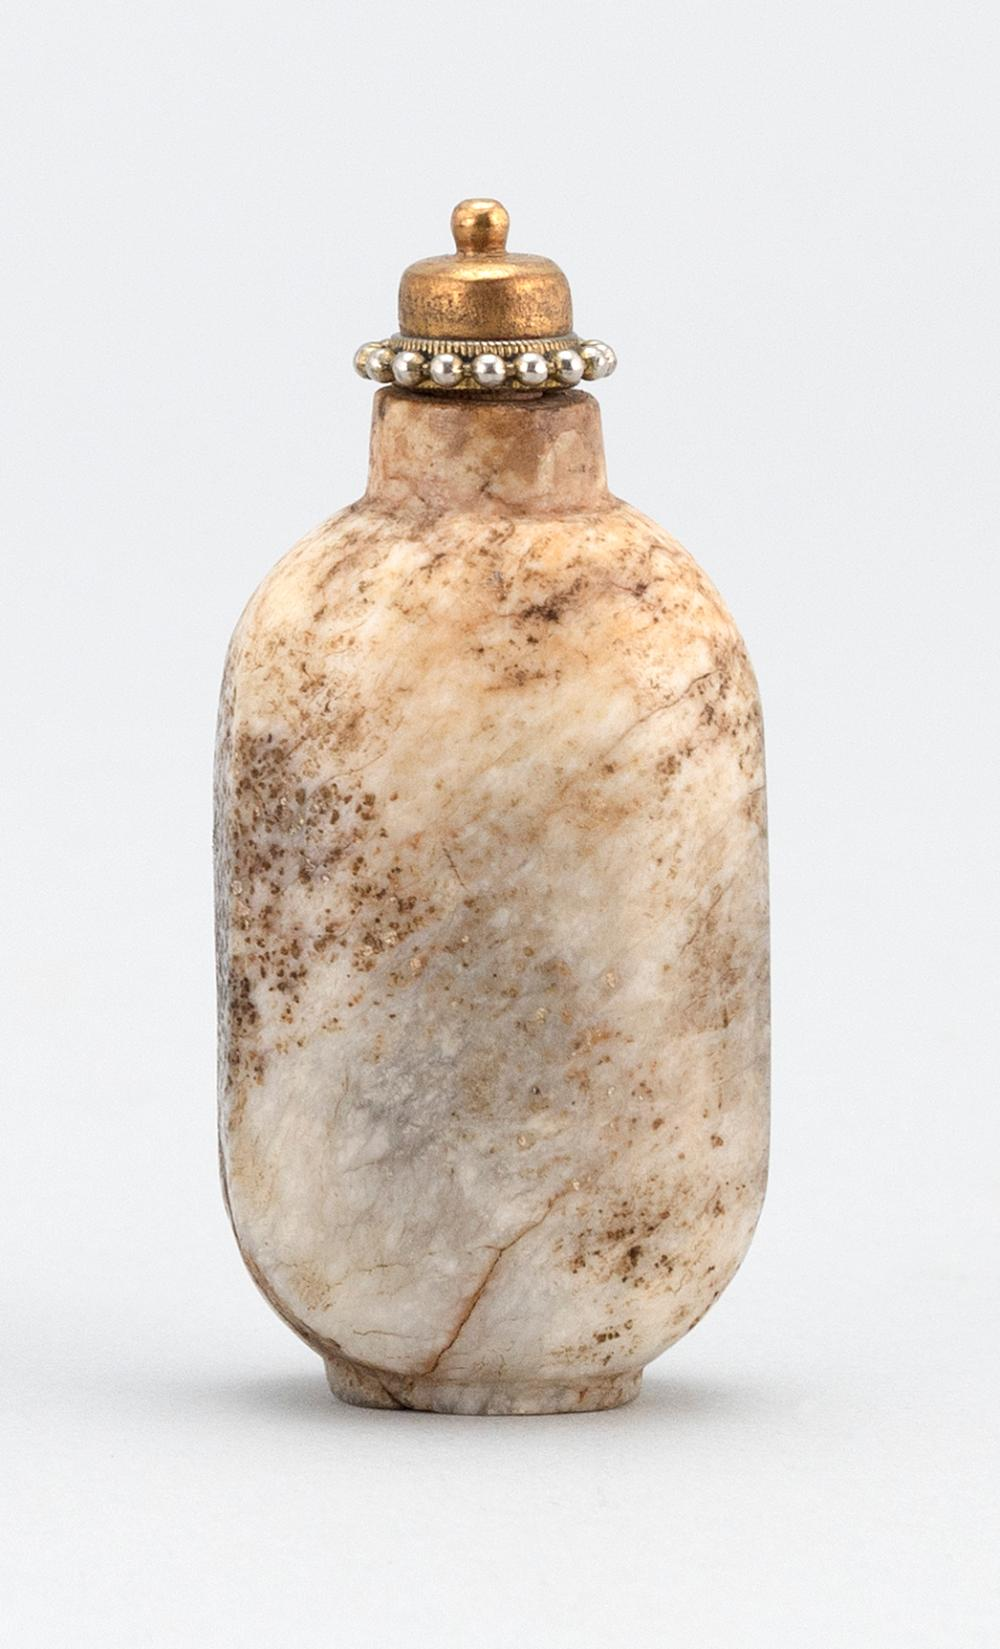 CHINESE CHICKEN BONE JADE SNUFF BOTTLE In modified rectangular form. Dramatic gray, brown and cream markings. Height 2.25